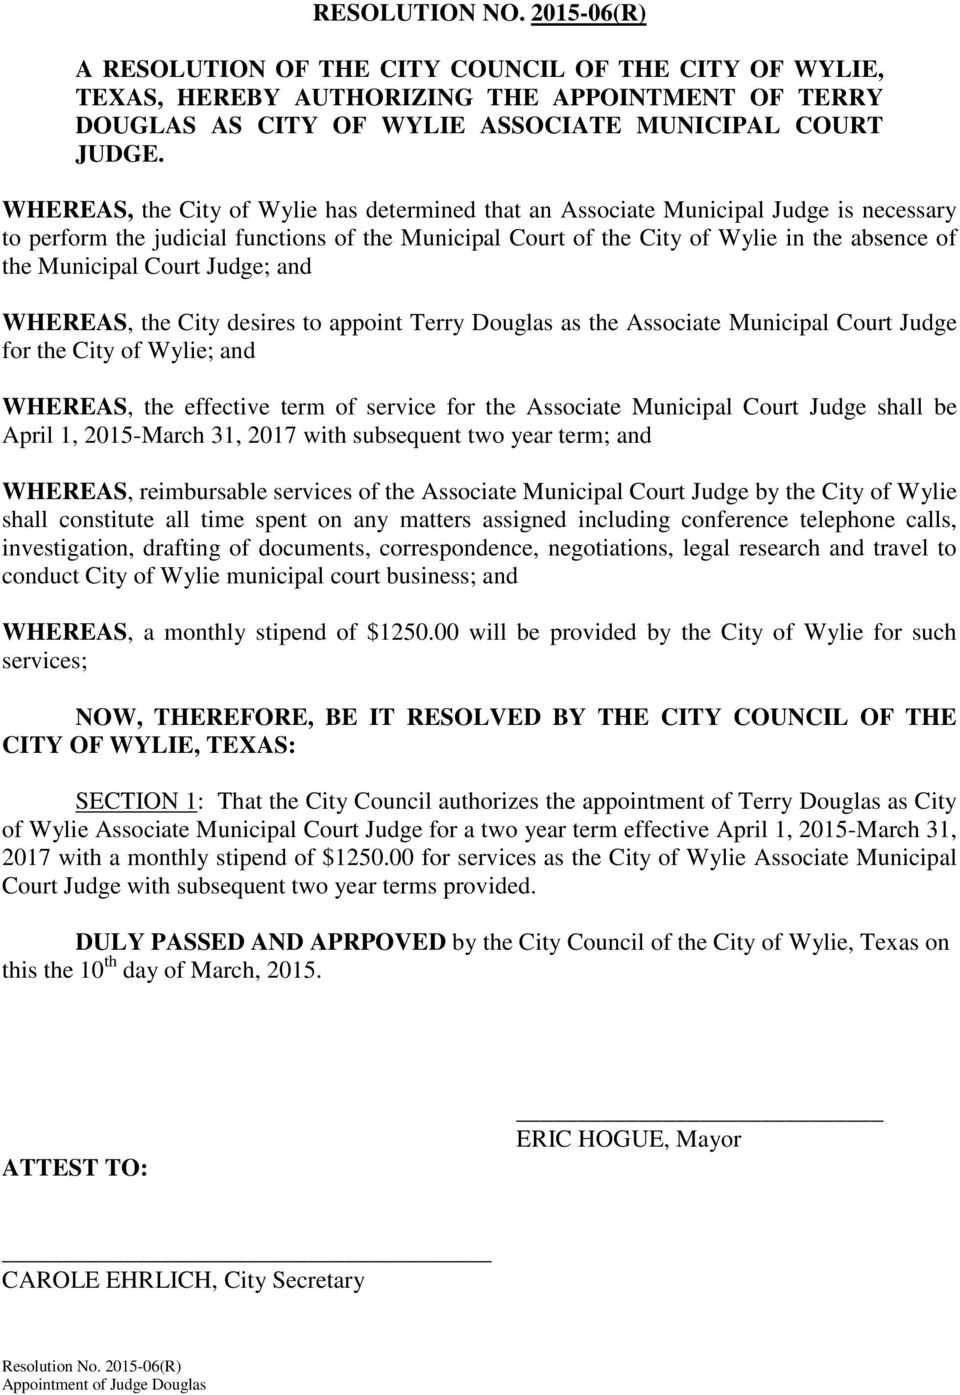 Court Judge; and WHEREAS, the City desires to appoint Terry Douglas as the Associate Municipal Court Judge for the City of Wylie; and WHEREAS, the effective term of service for the Associate